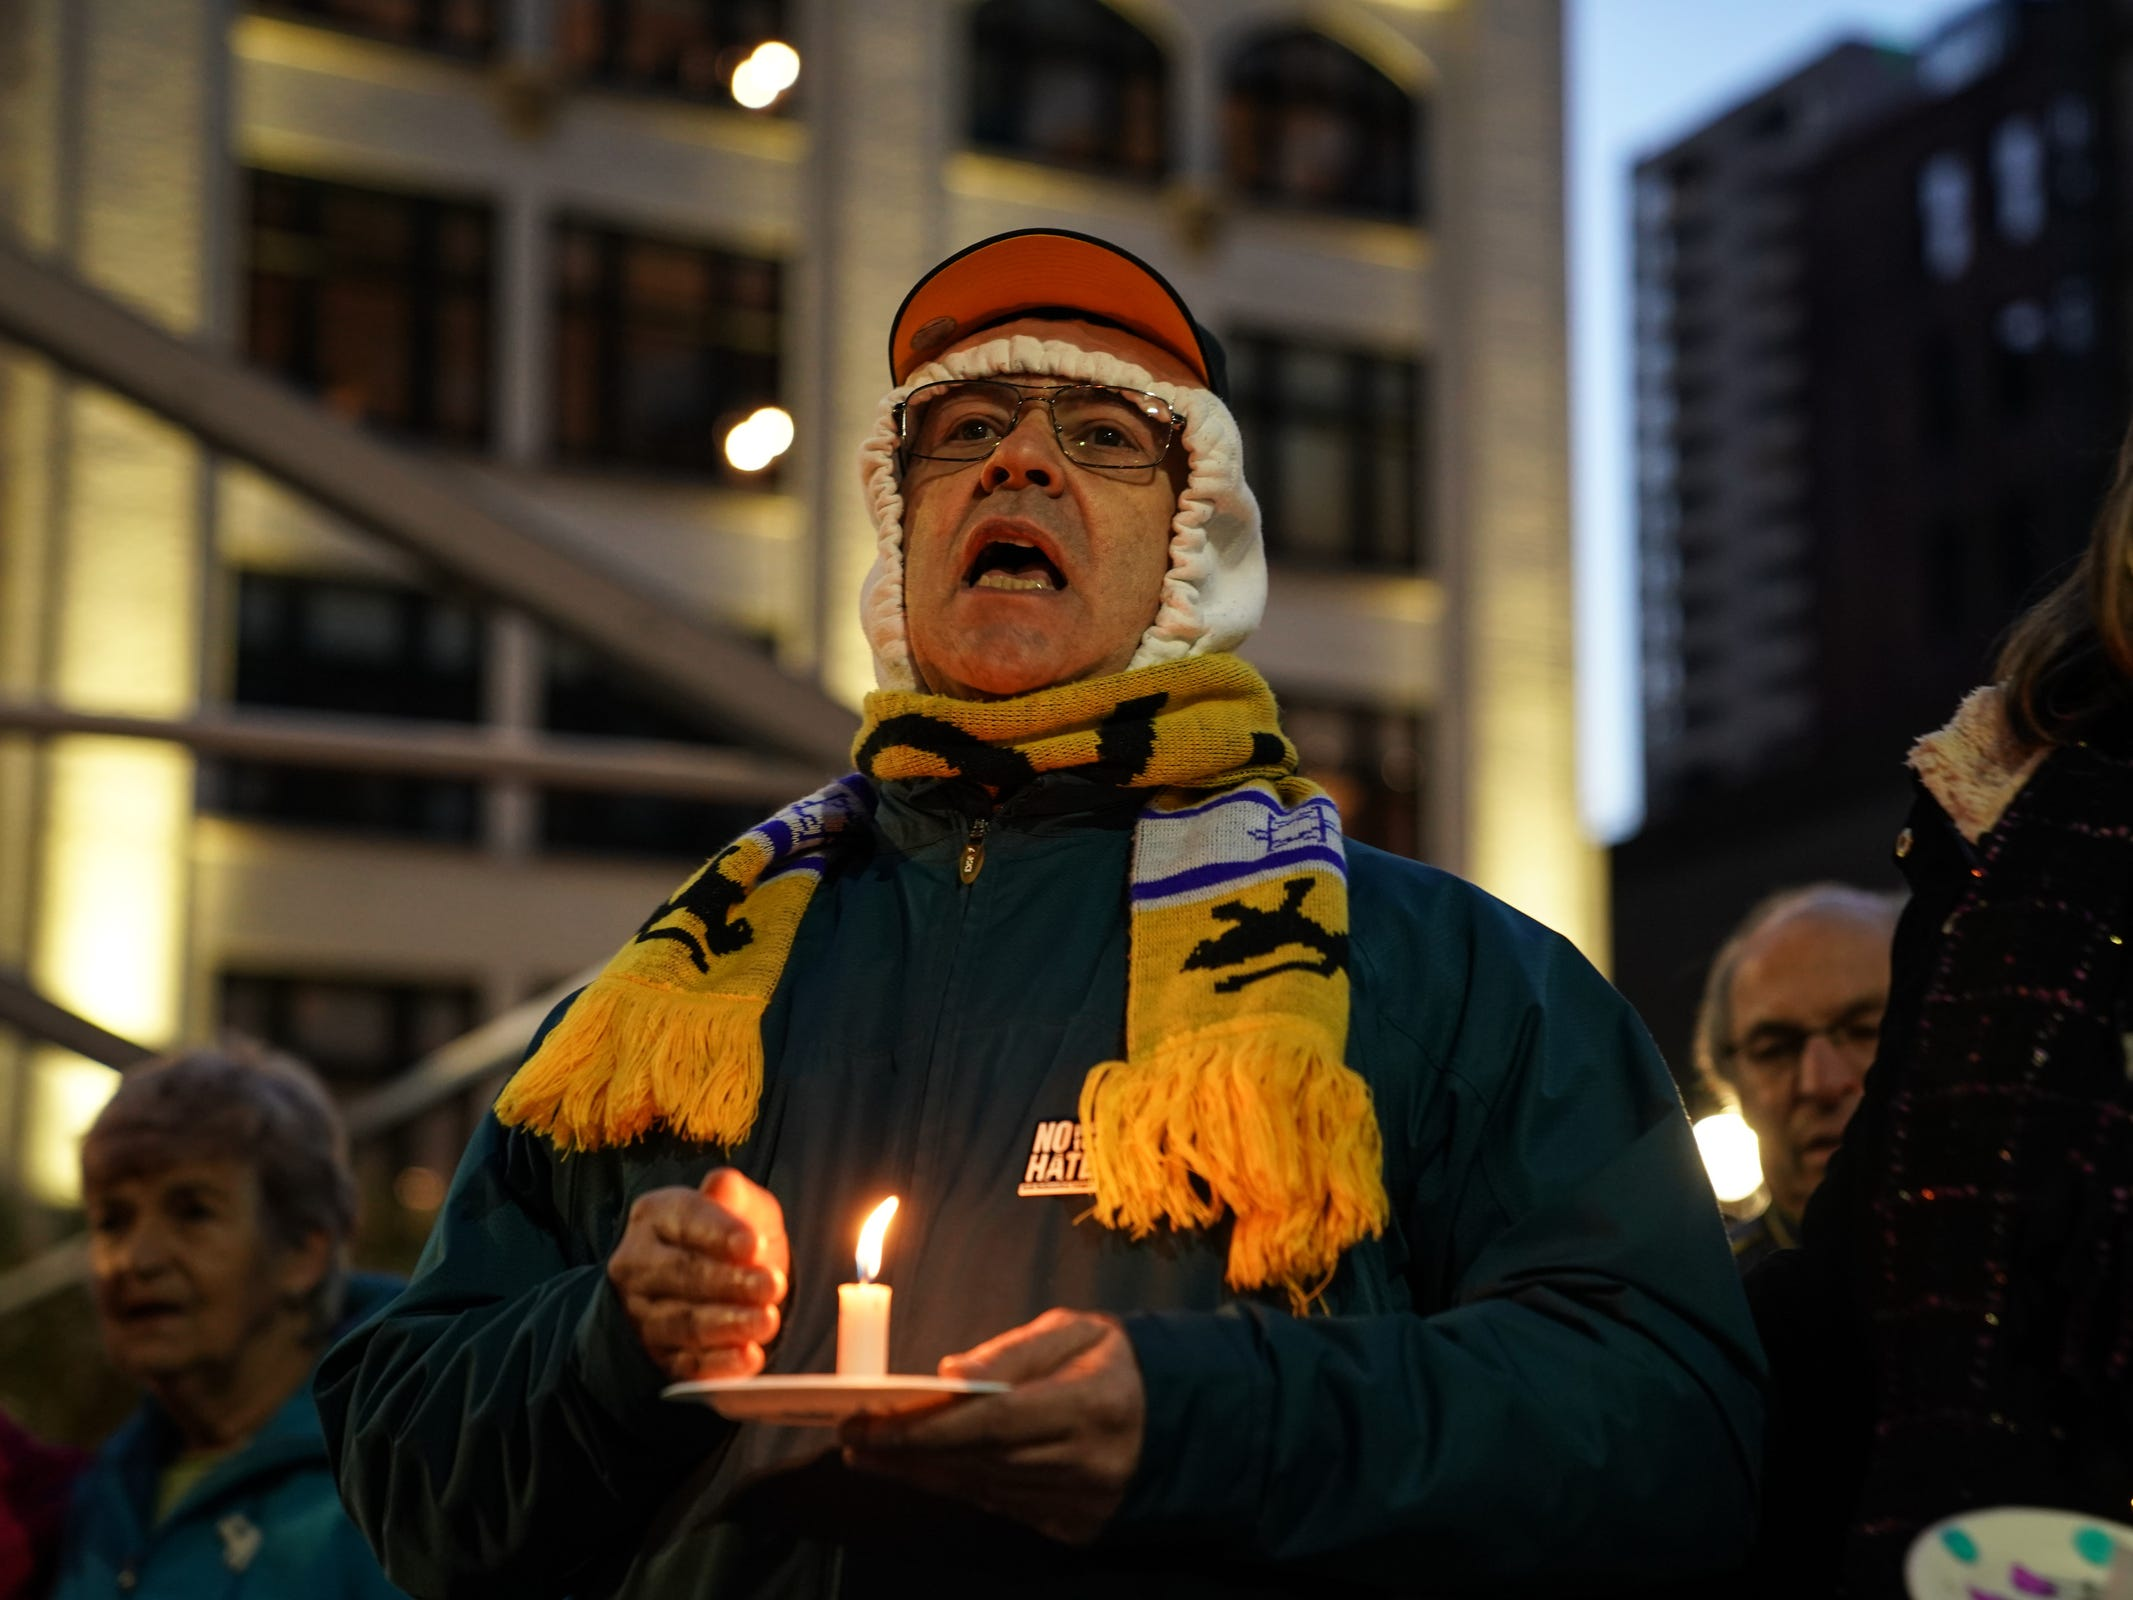 Harvey Leven of Farmington Hills sings along with other community members during a vigil for the shooting victims killed inside the Tree of Life synagogue in Pittsburgh on Monday, October 29, 2018 at Capitol Park in downtown Detroit.